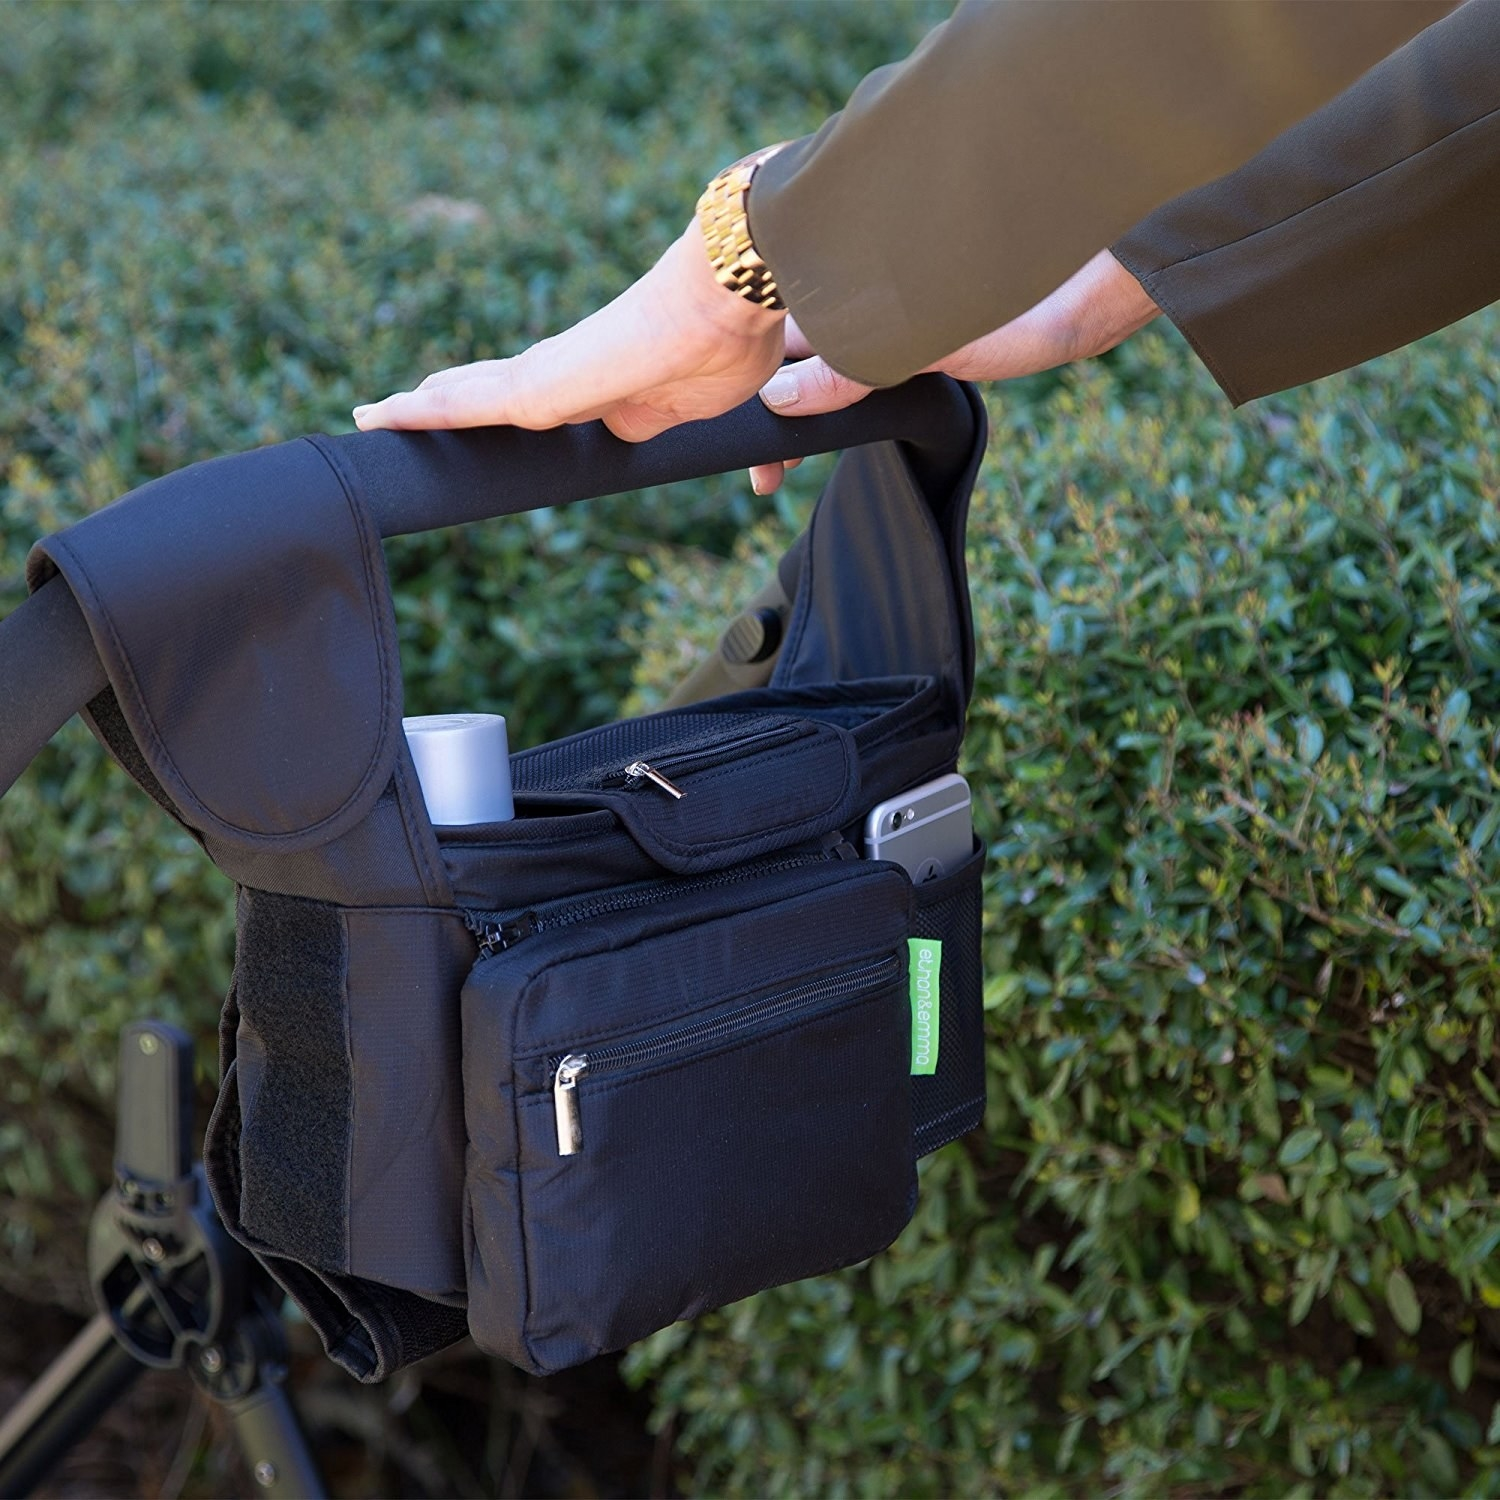 Person pushing stroller with storage bag hanging on handle